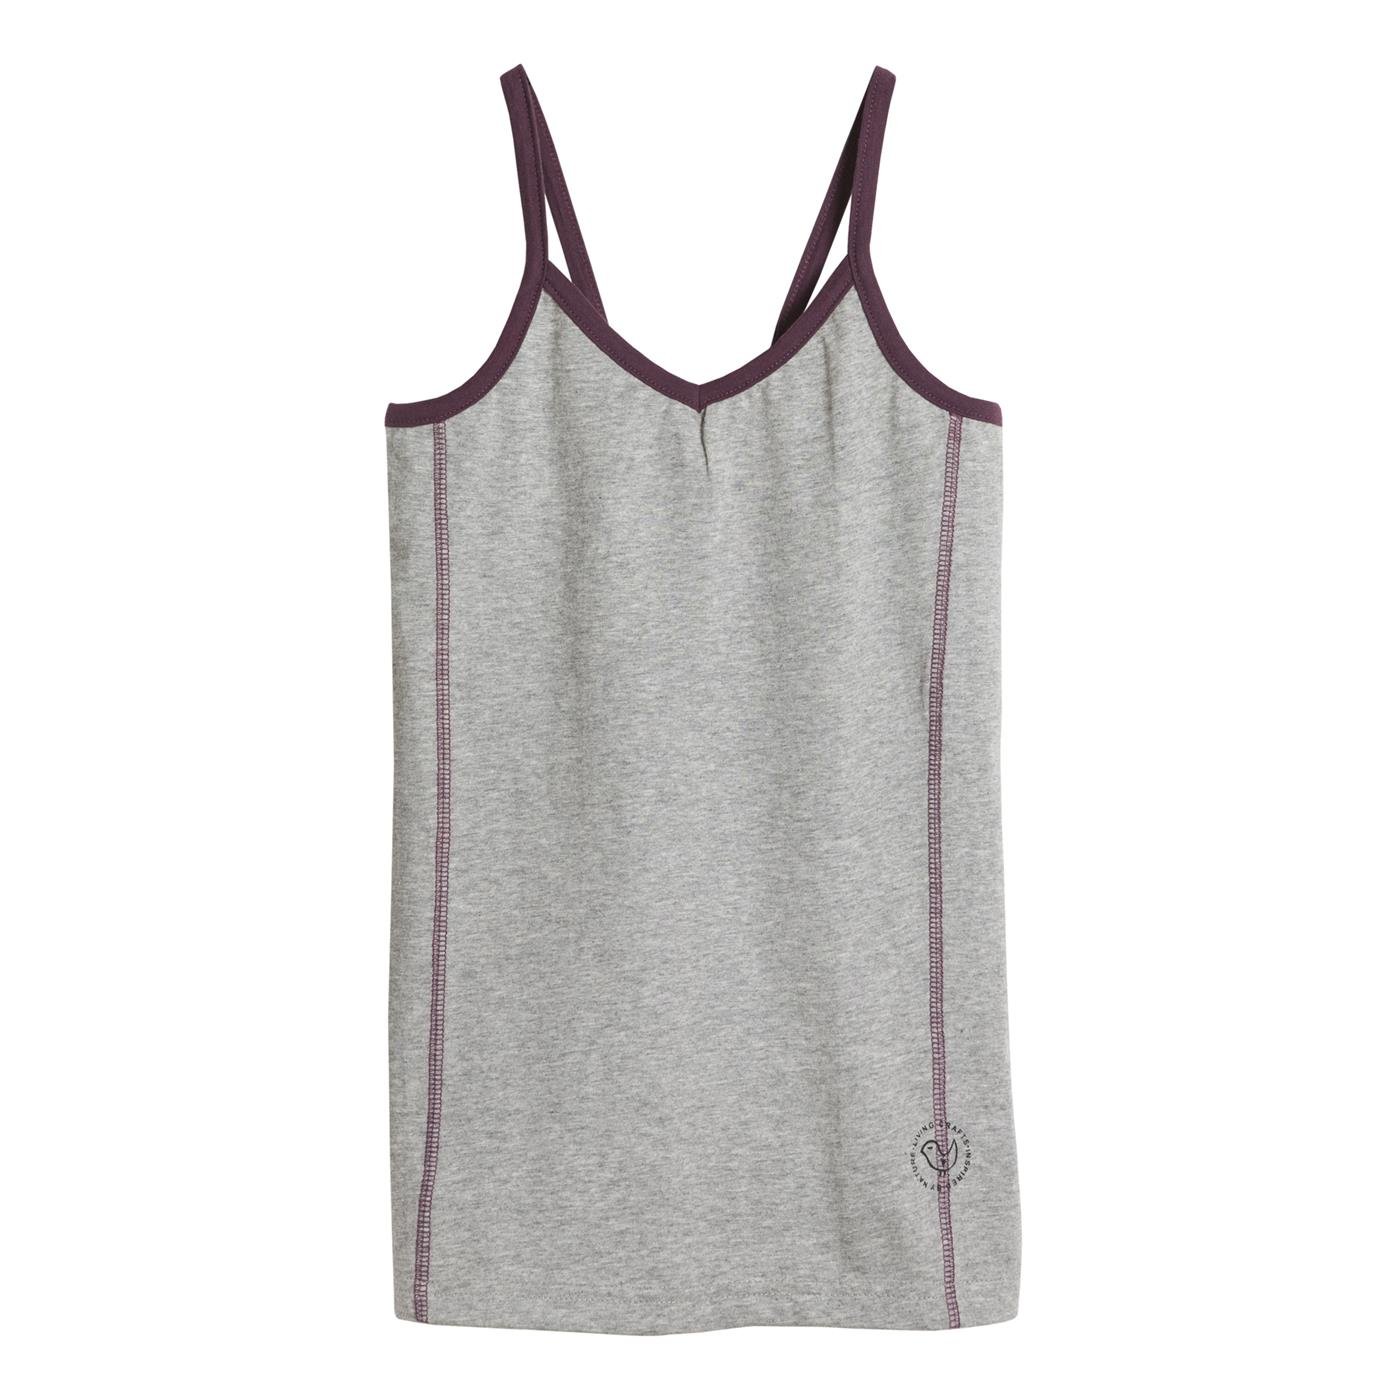 Girl's sleeveless vest